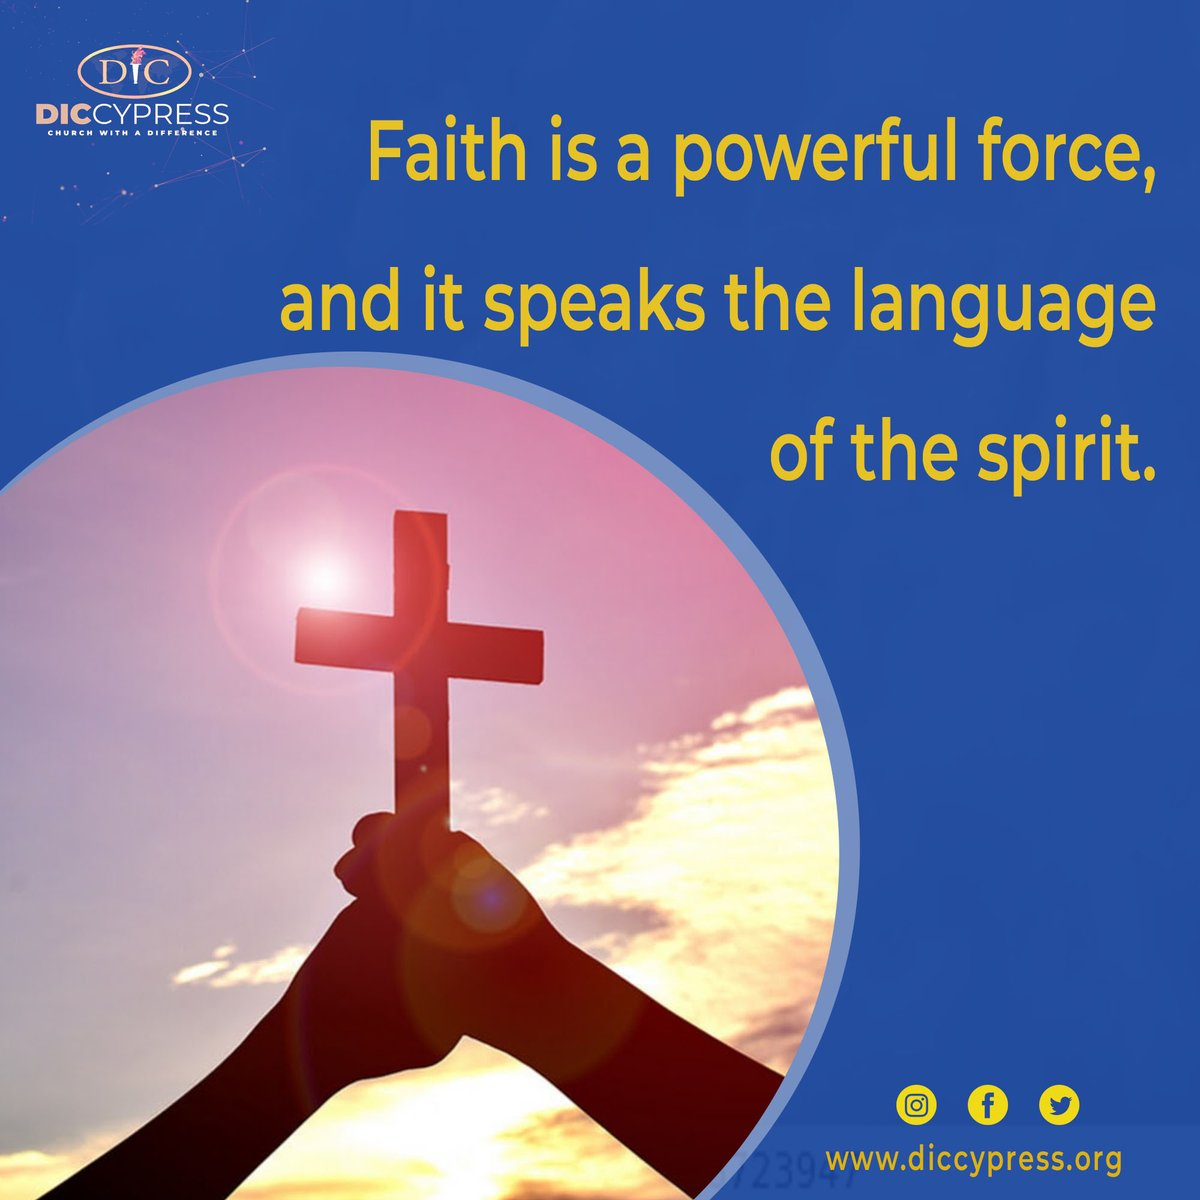 When you are possessed with the spirit of faith it changes the way you see things, and how you speak about them.   #Faithispowerful #languageofGod #HolySpirit #faithspeaks #prayer #Godsvoice #Heaven #Father #scripture #empowering #biblical #inJesusname